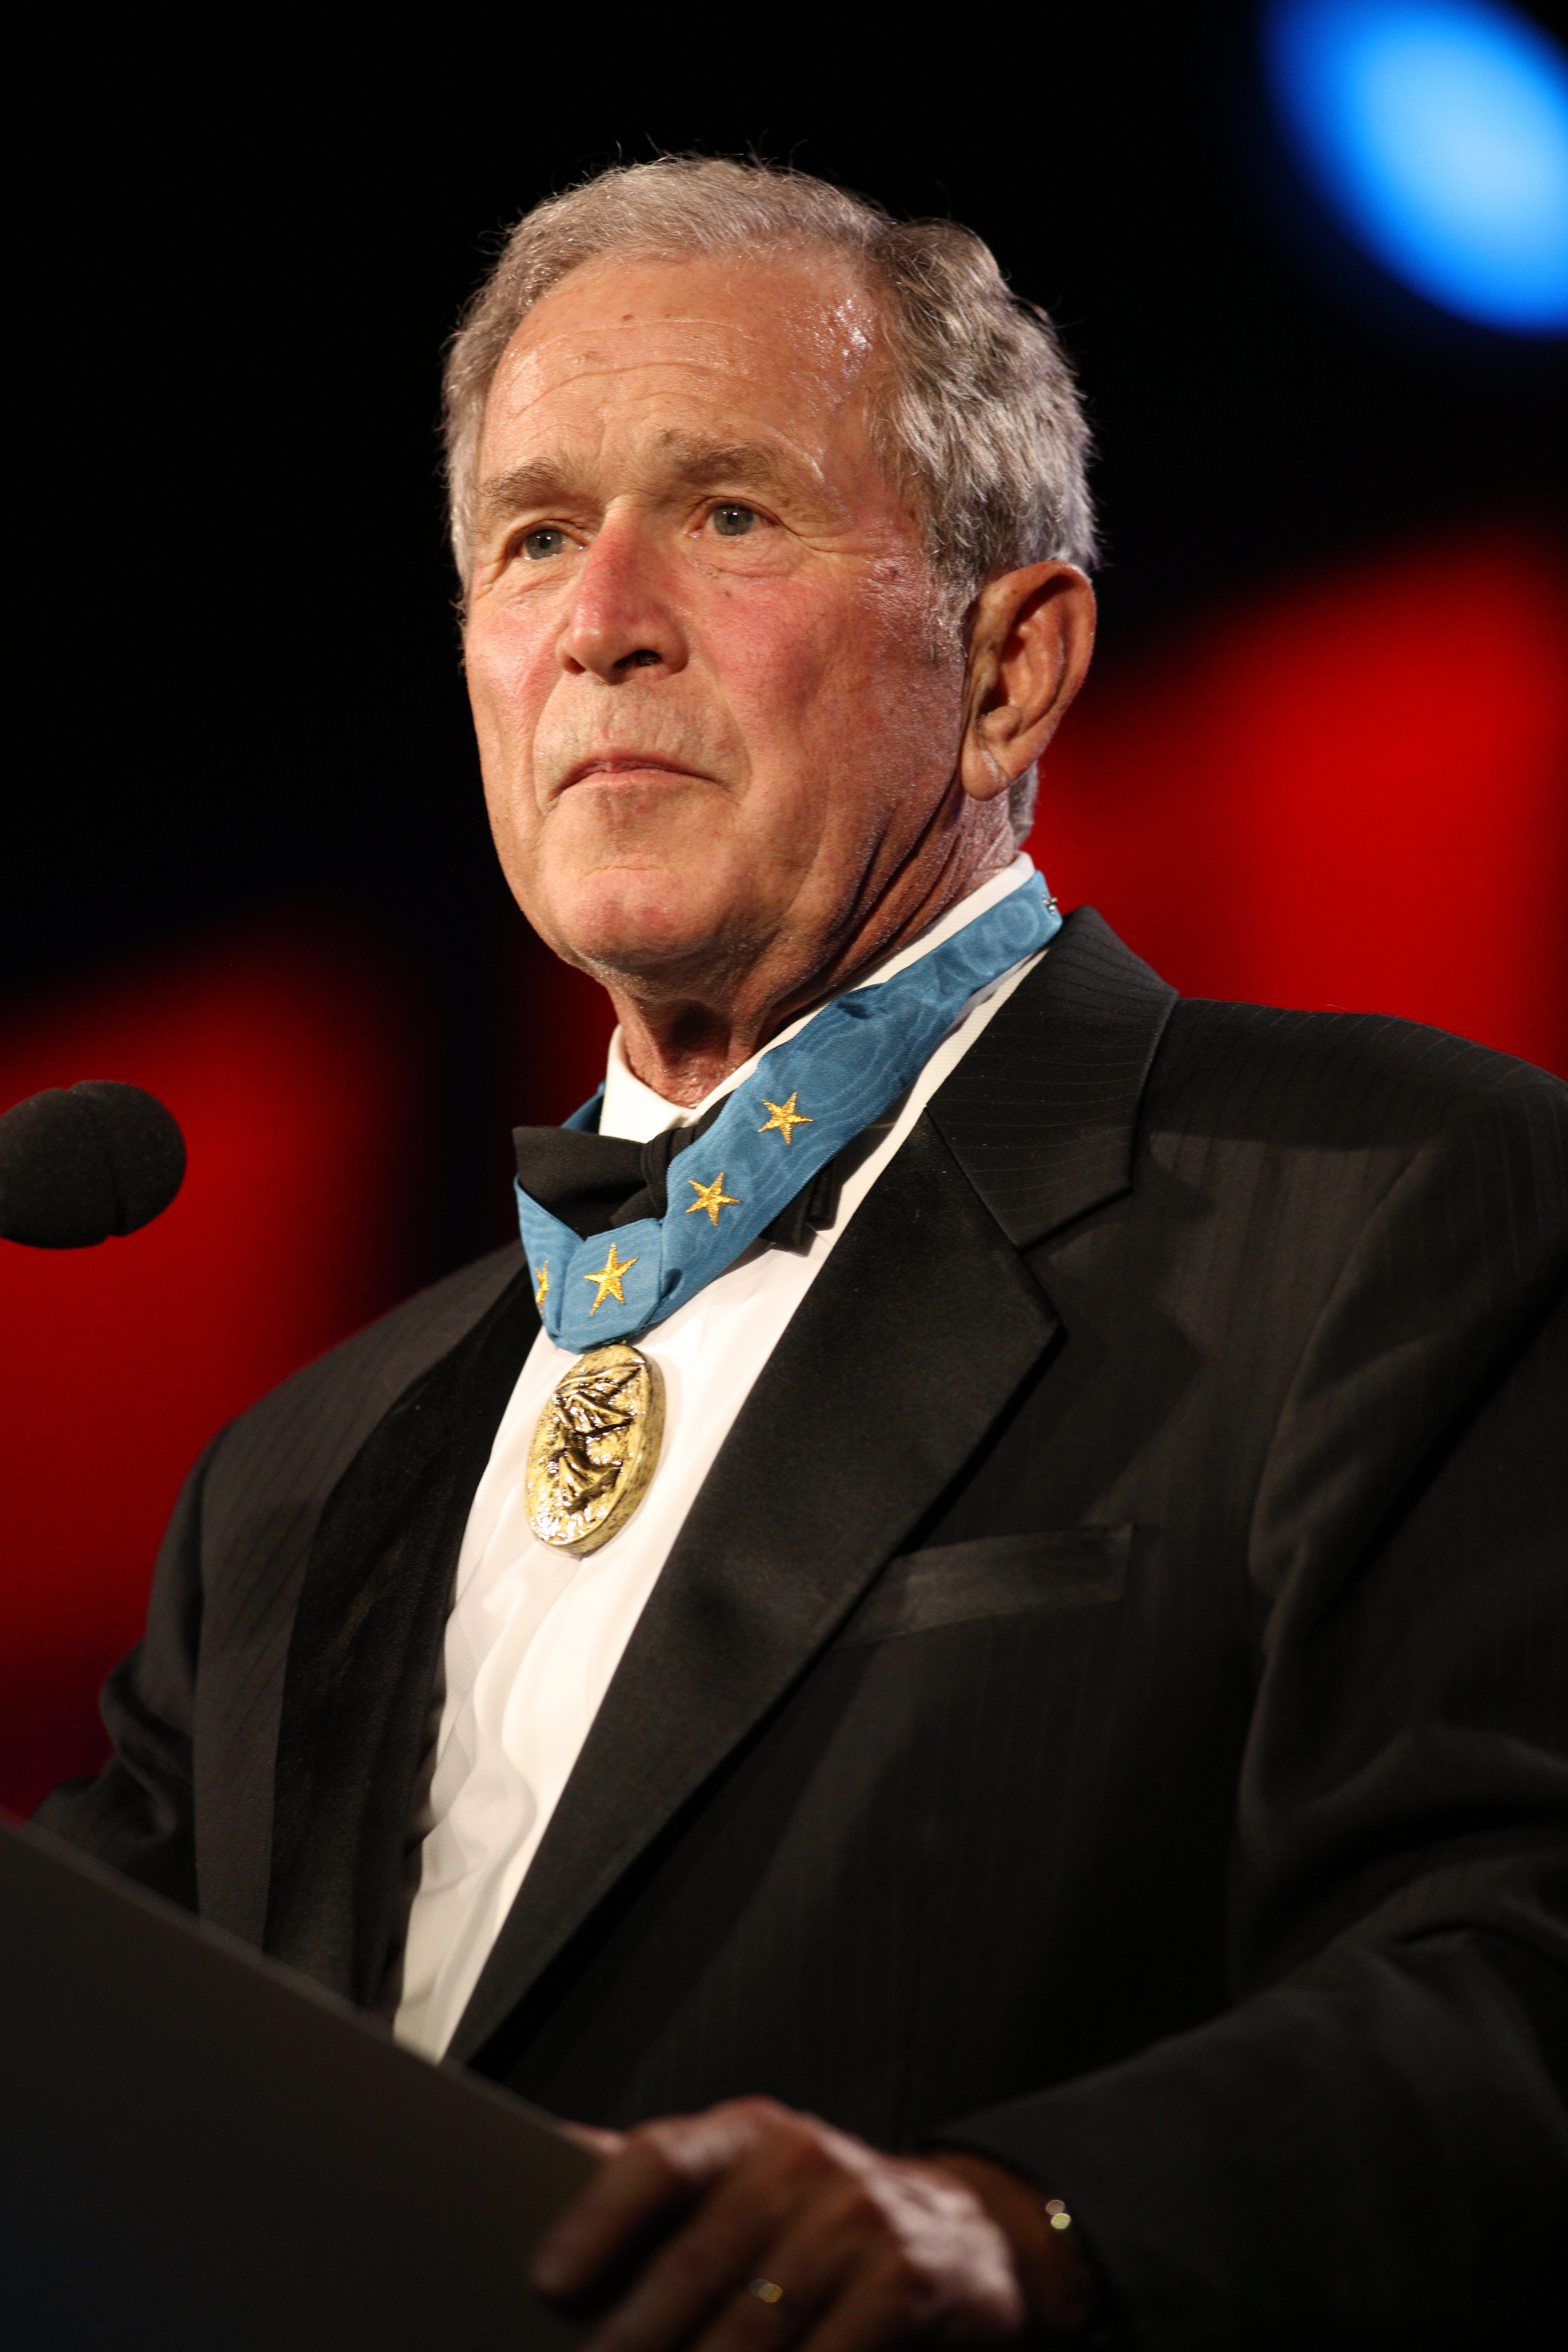 George W. Bush takes the stage at the 2015 Starkey Hearing Foundation So The World May Hear Gala in St. Paul, Minn., at the St. Paul RiverCentre on July 26, 2015.